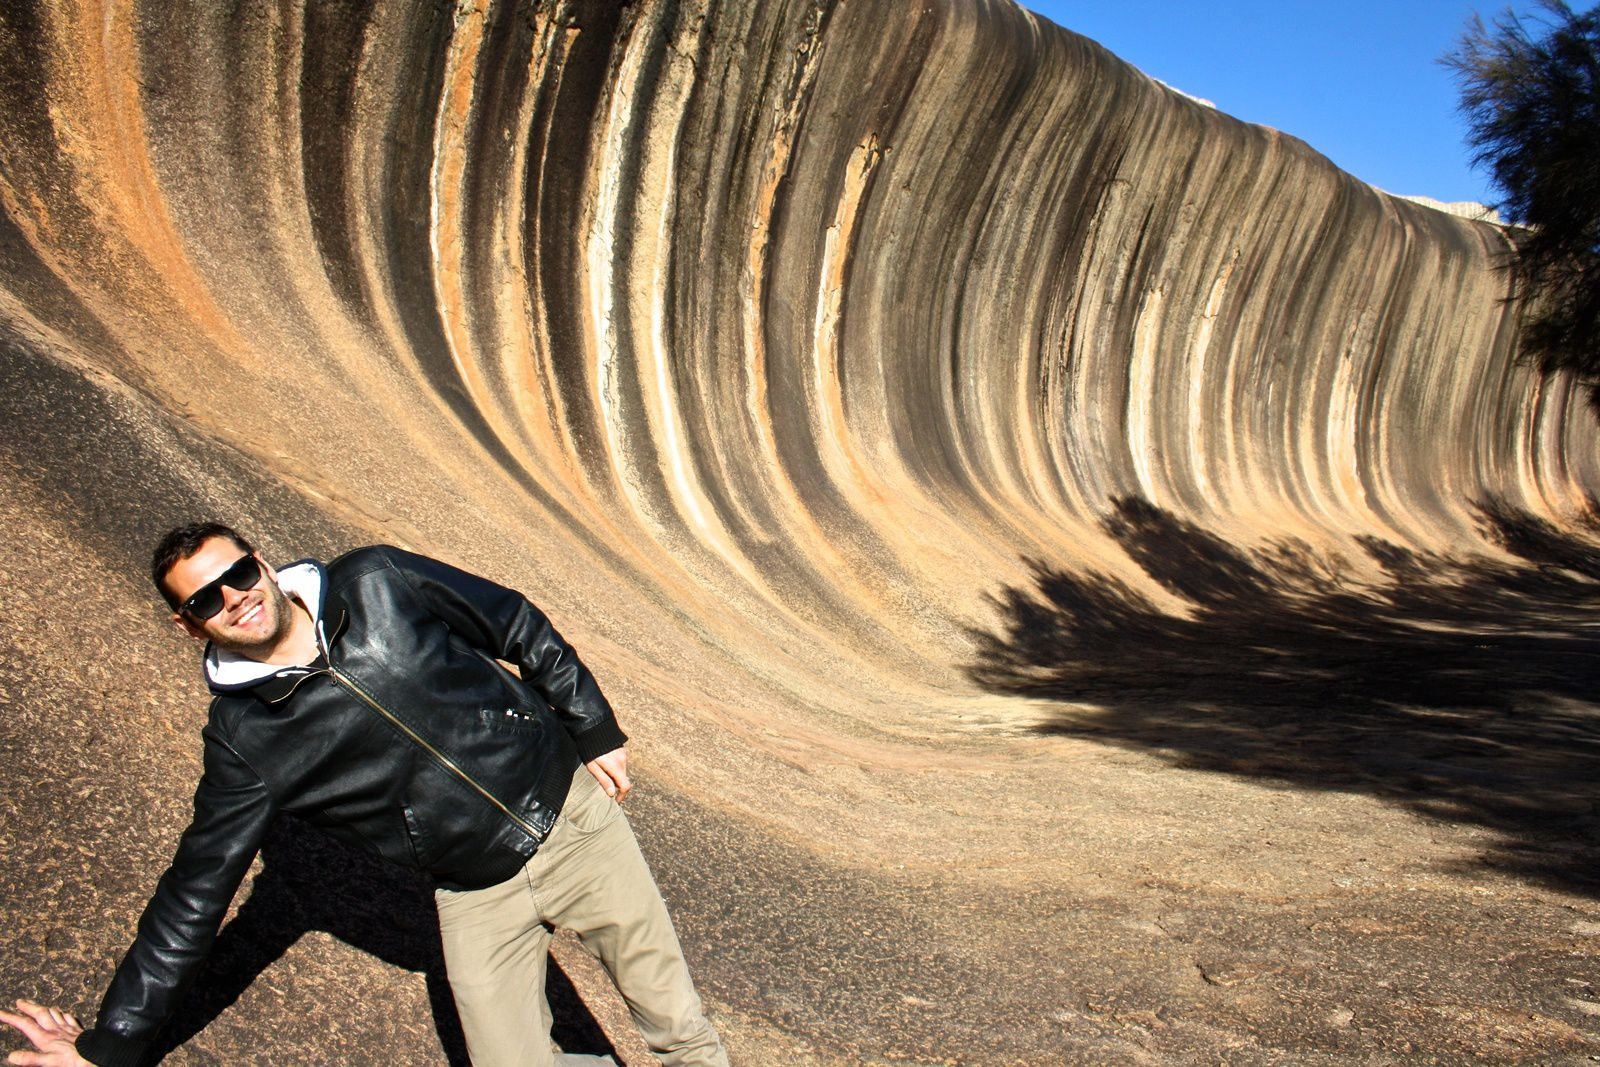 On the road to the Wave Rock ...